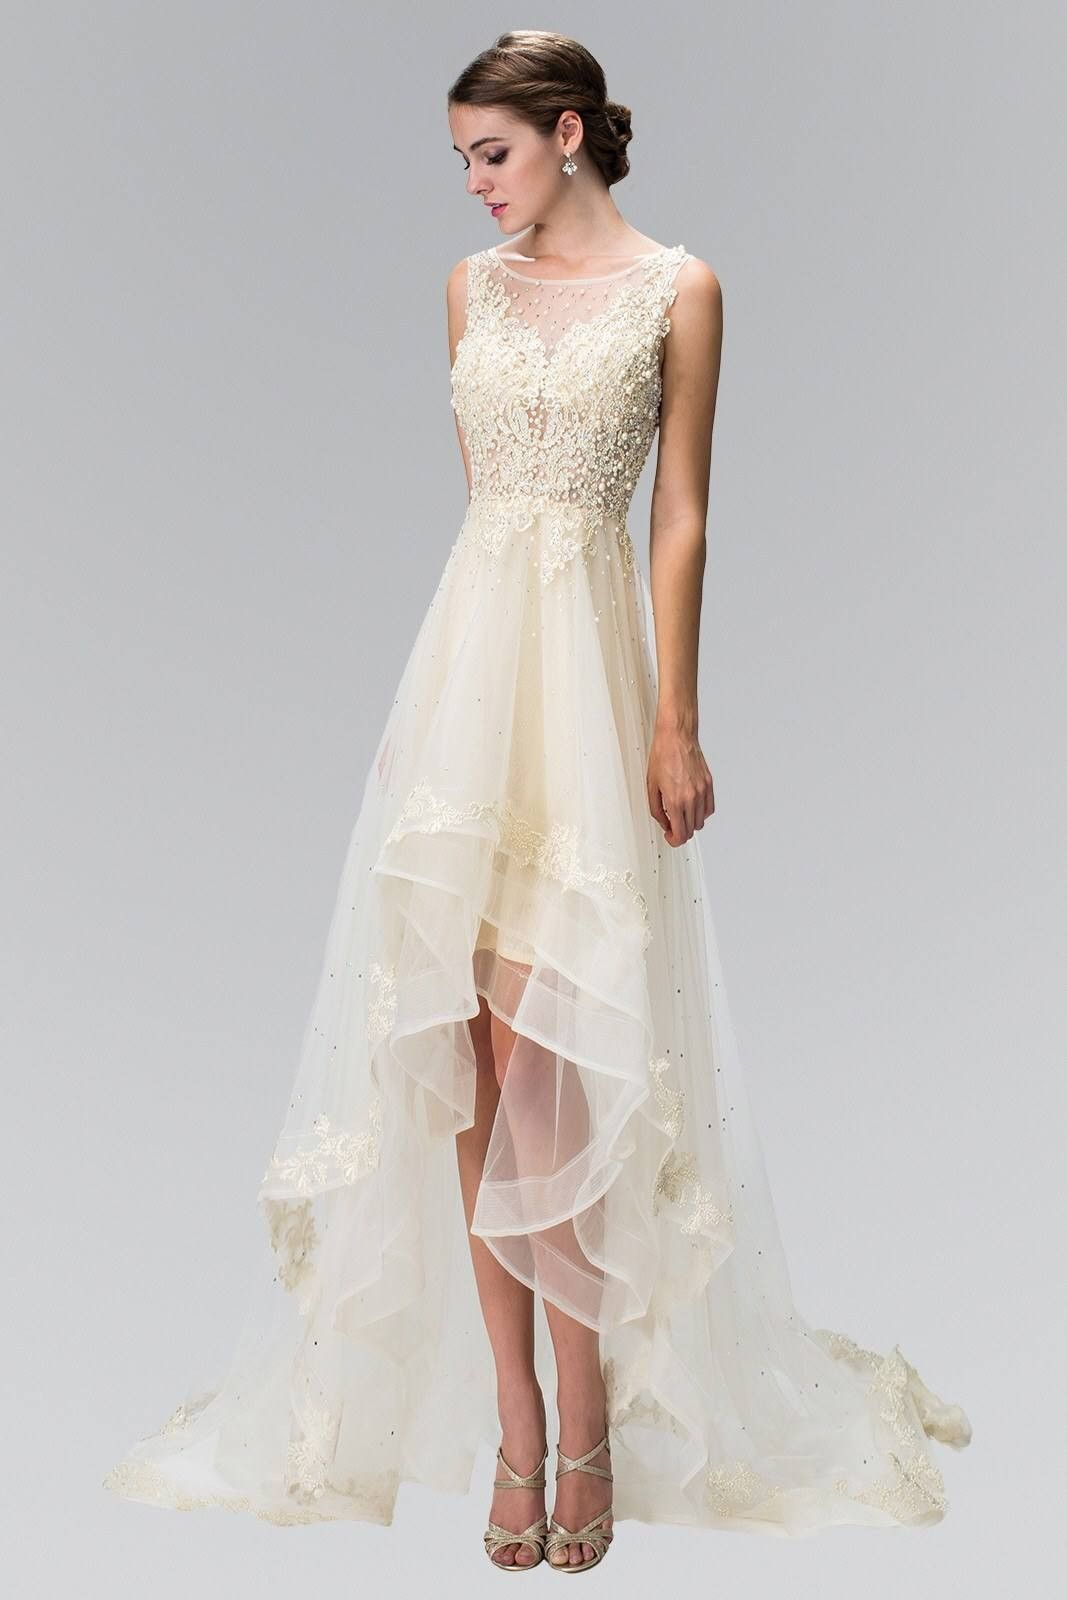 Cheap high low wedding dresses  High and low wedding dress gl Affordable wedding dress